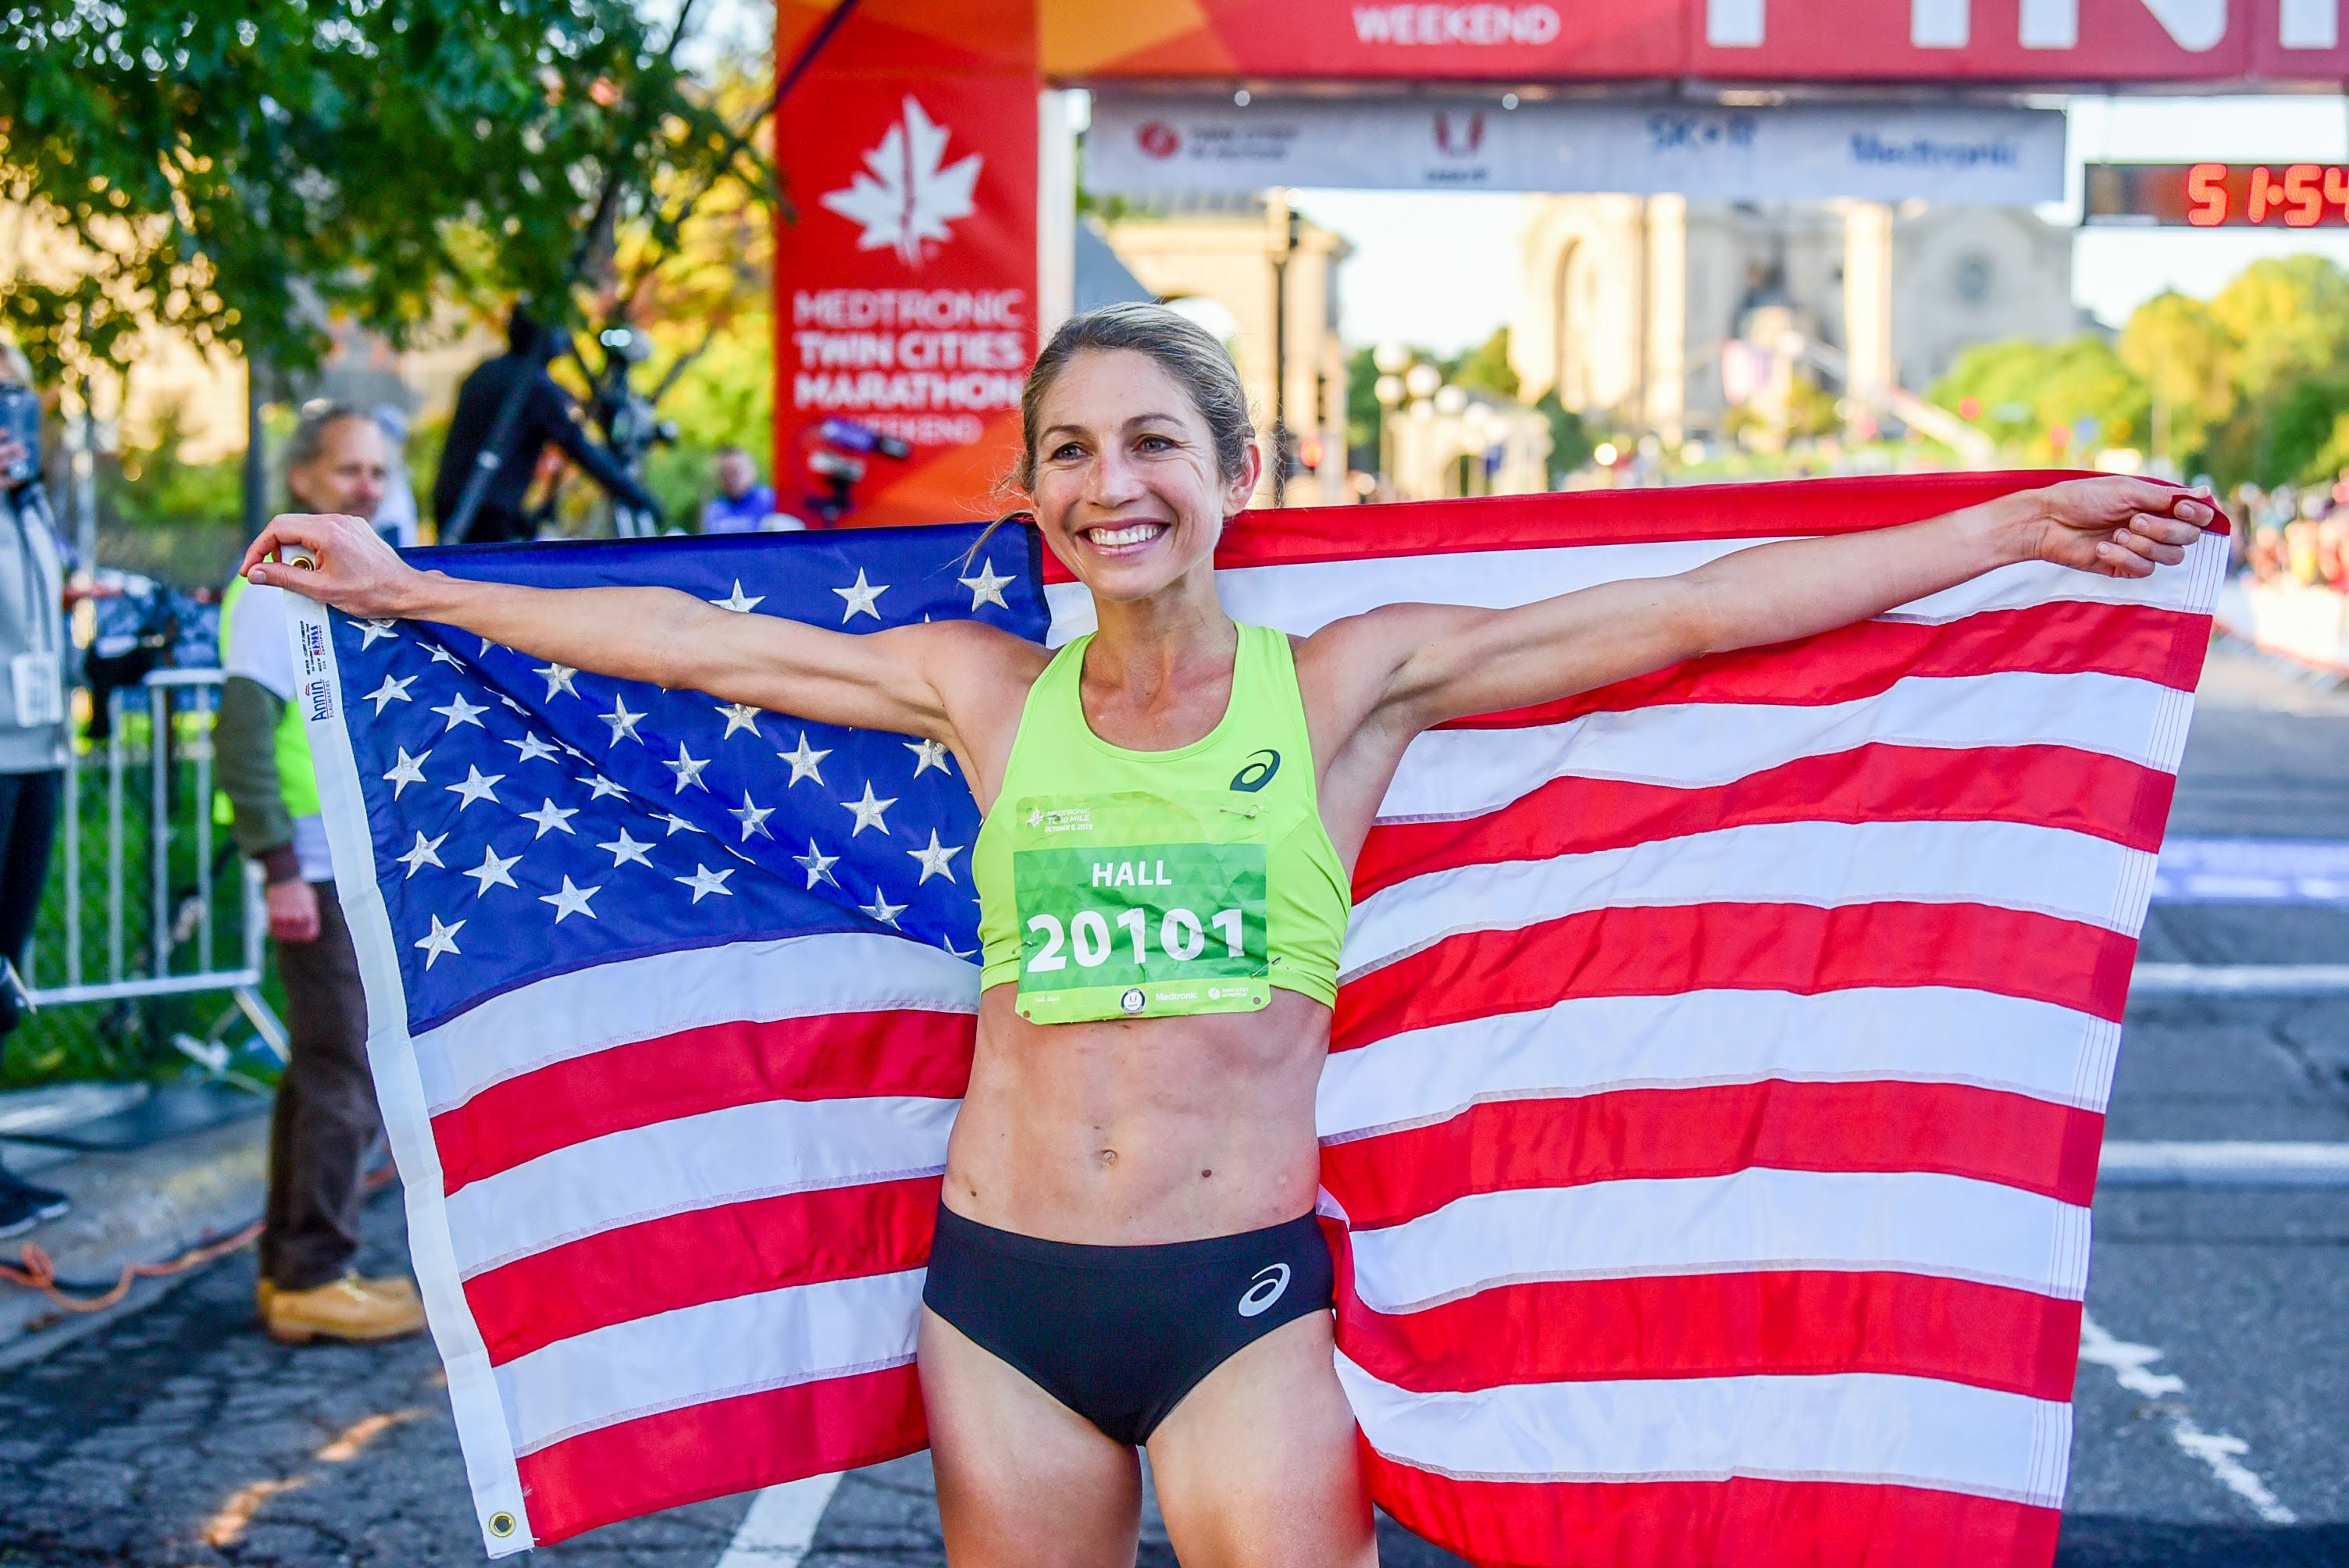 Sara Hall wins the 2019 USATF 10-Mile Championships, one week after racing the Berlin Marathon.